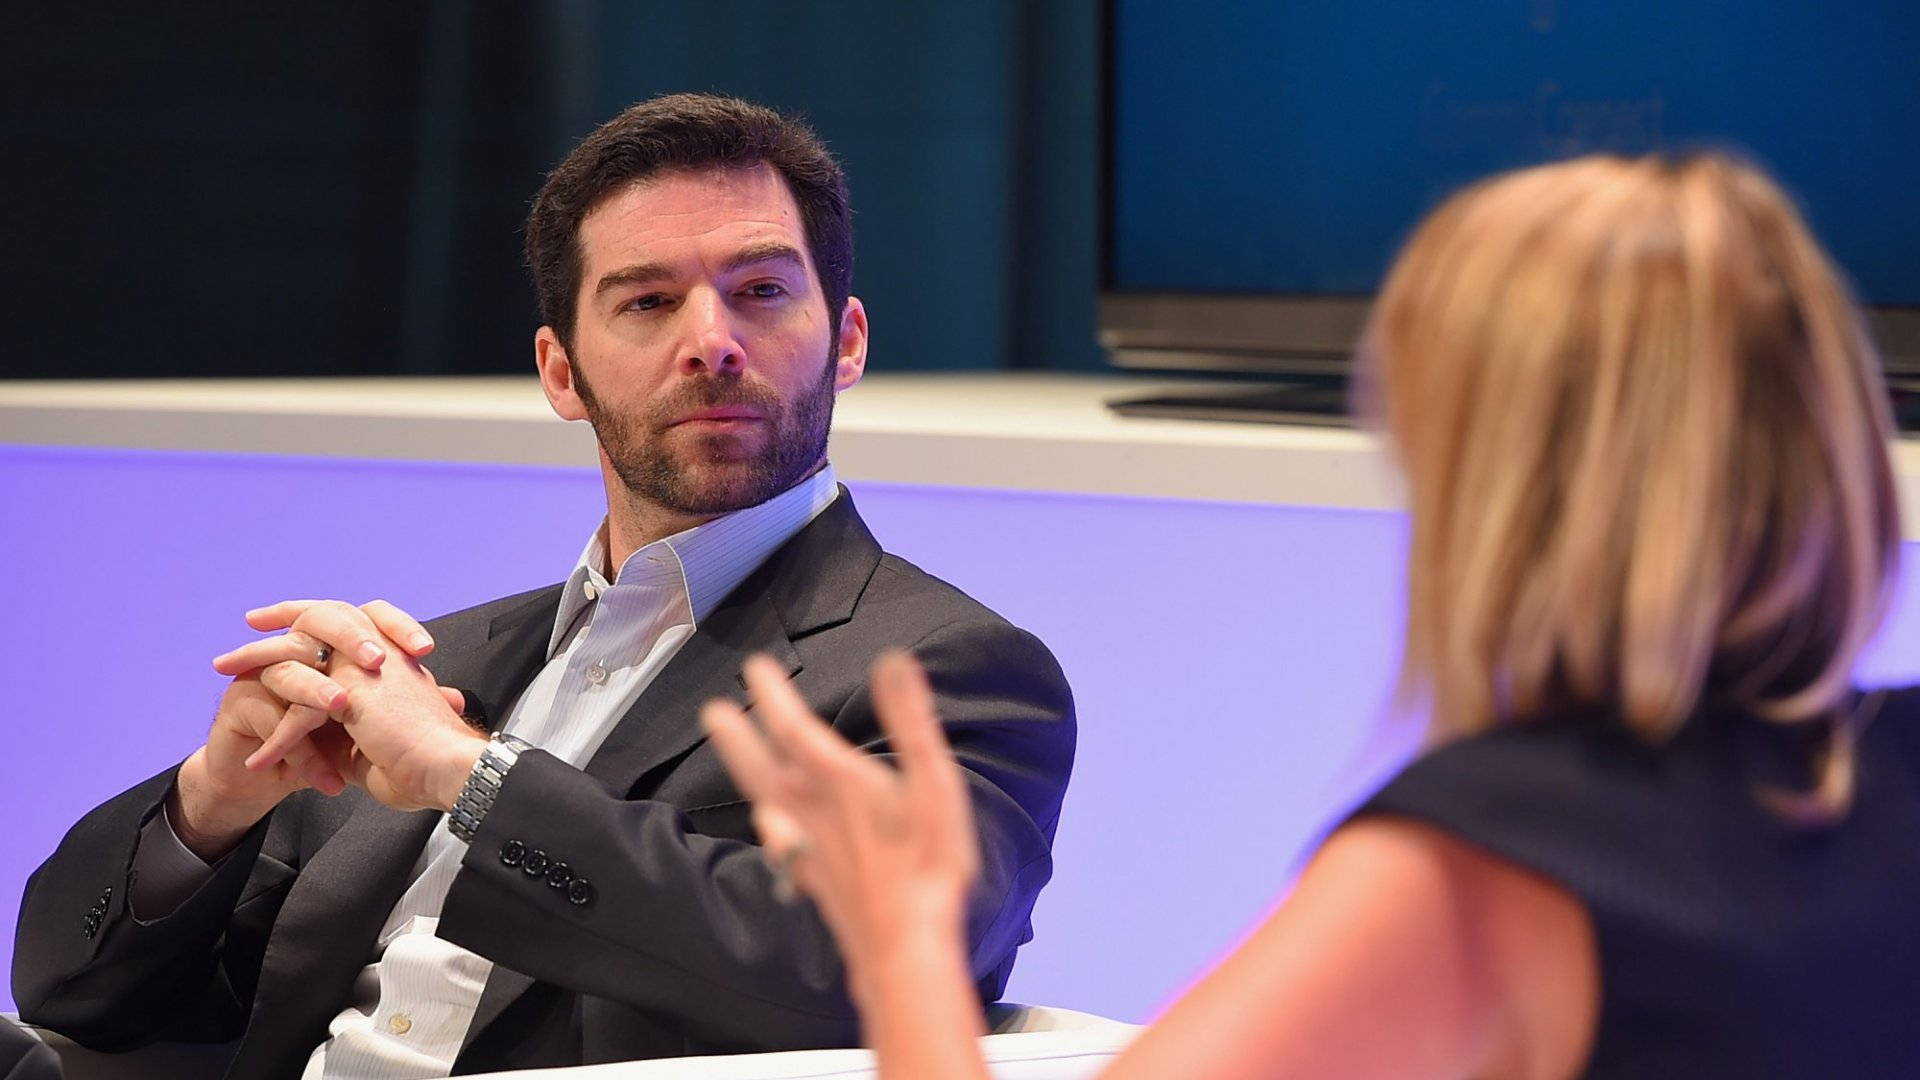 LinkedIn's CEO on the Most Important Leadership Lesson He's Learned